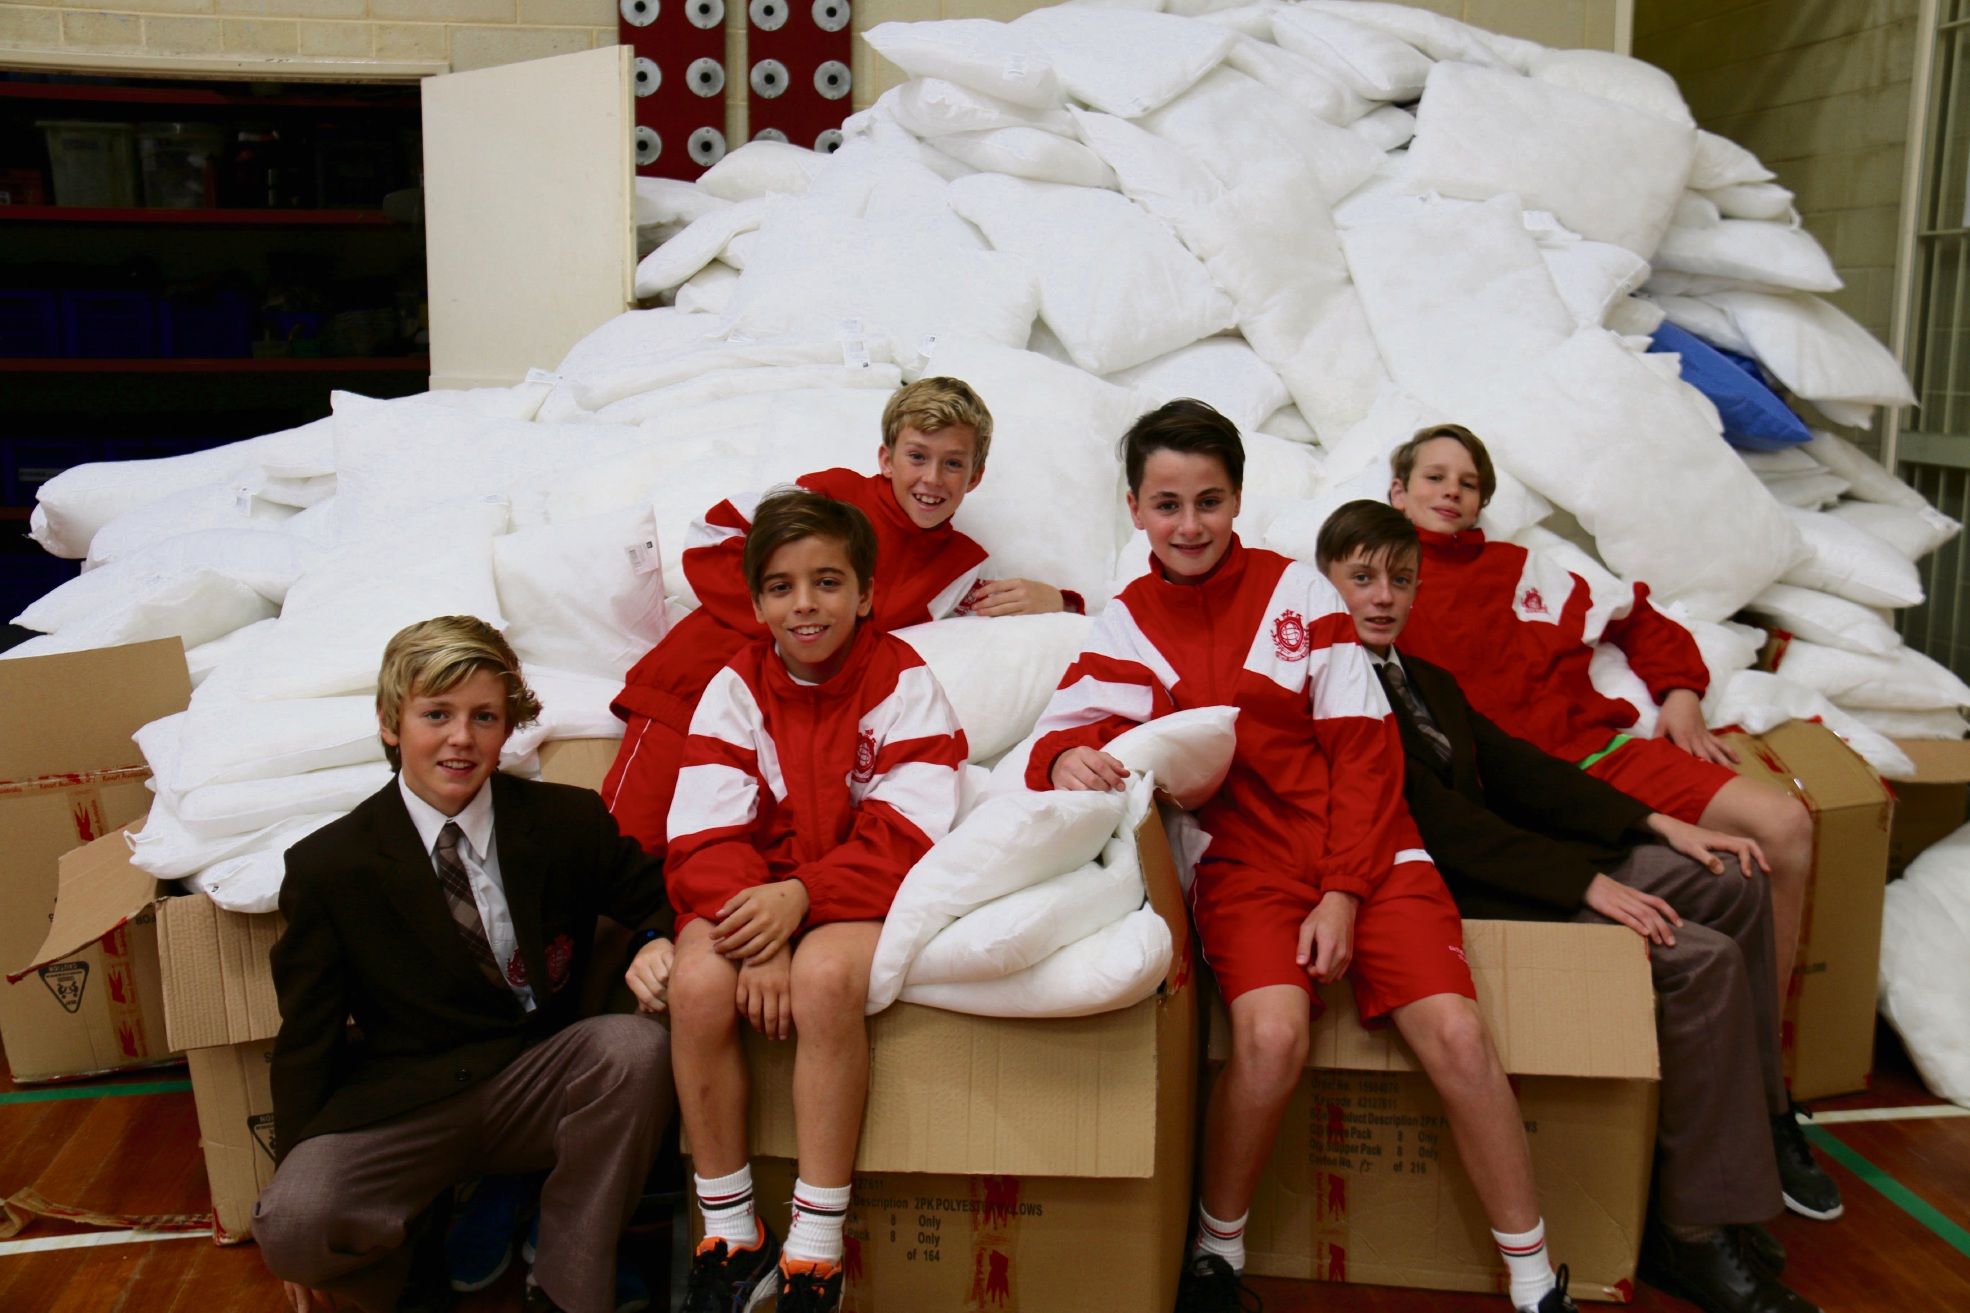 Nick Emes, Max Wood, Vincent Pettinicchio, Tom Woods and Oliver Frost.